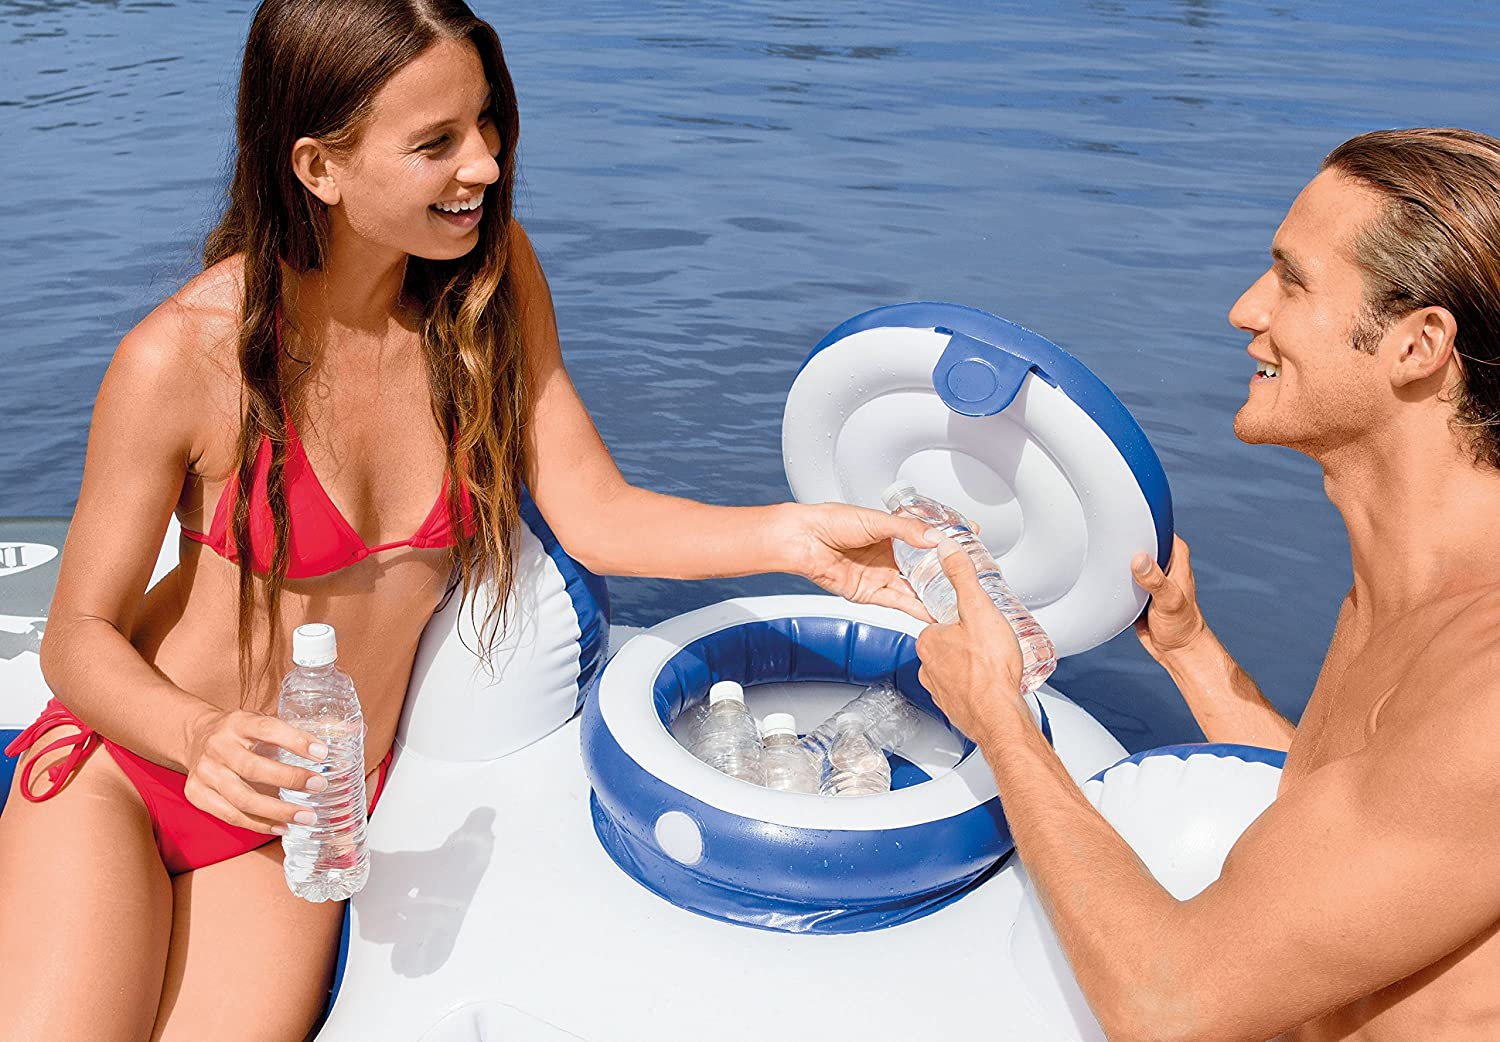 4 Pack 2 Person Cooler Tube Intex River Run Connect Inflatable Water Raft